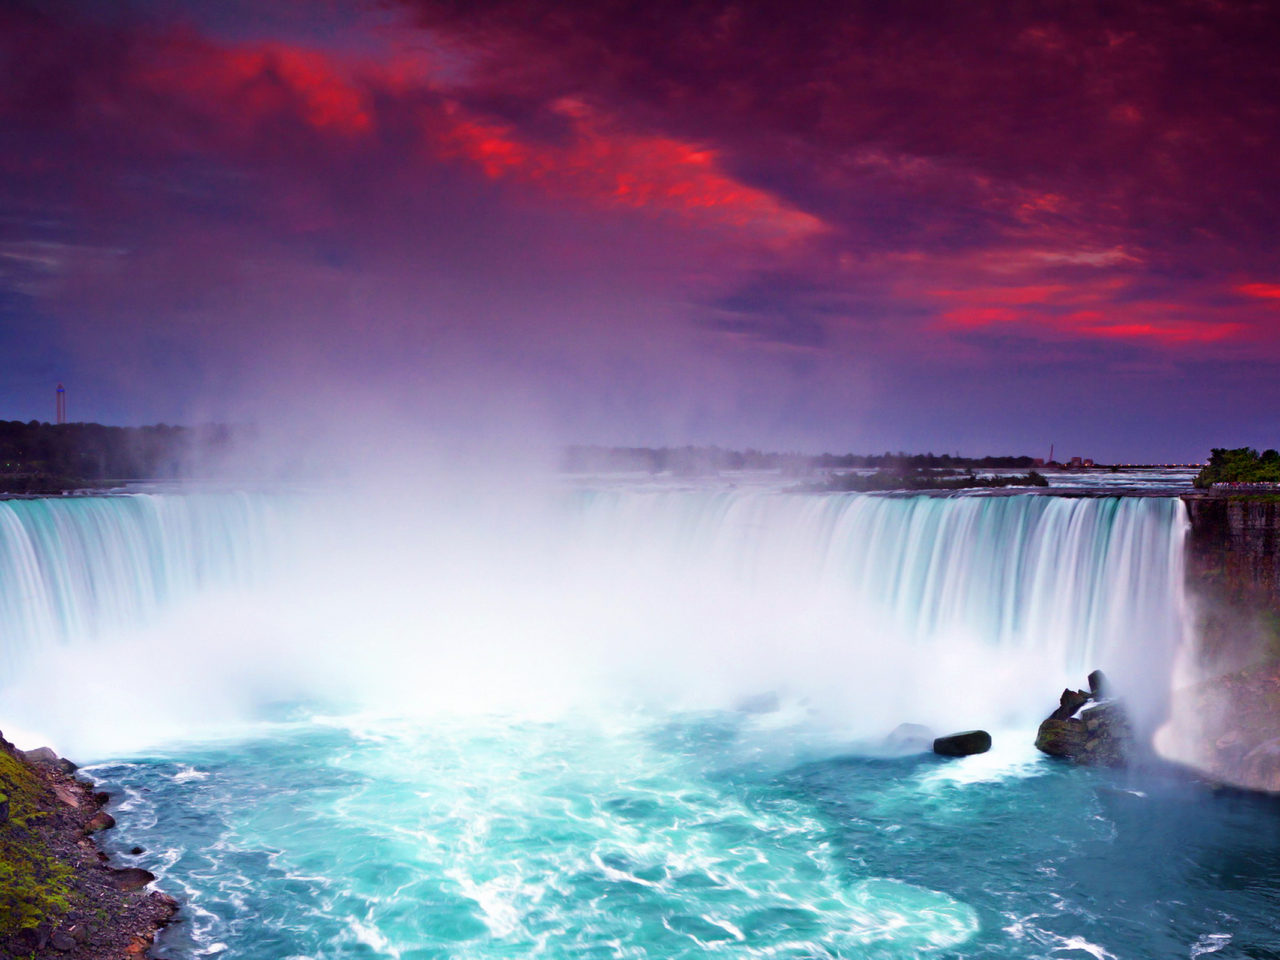 Niagara Falls At Night Wallpaper Niagara Falls At Night Lights Hd Wallpaper For Desktop